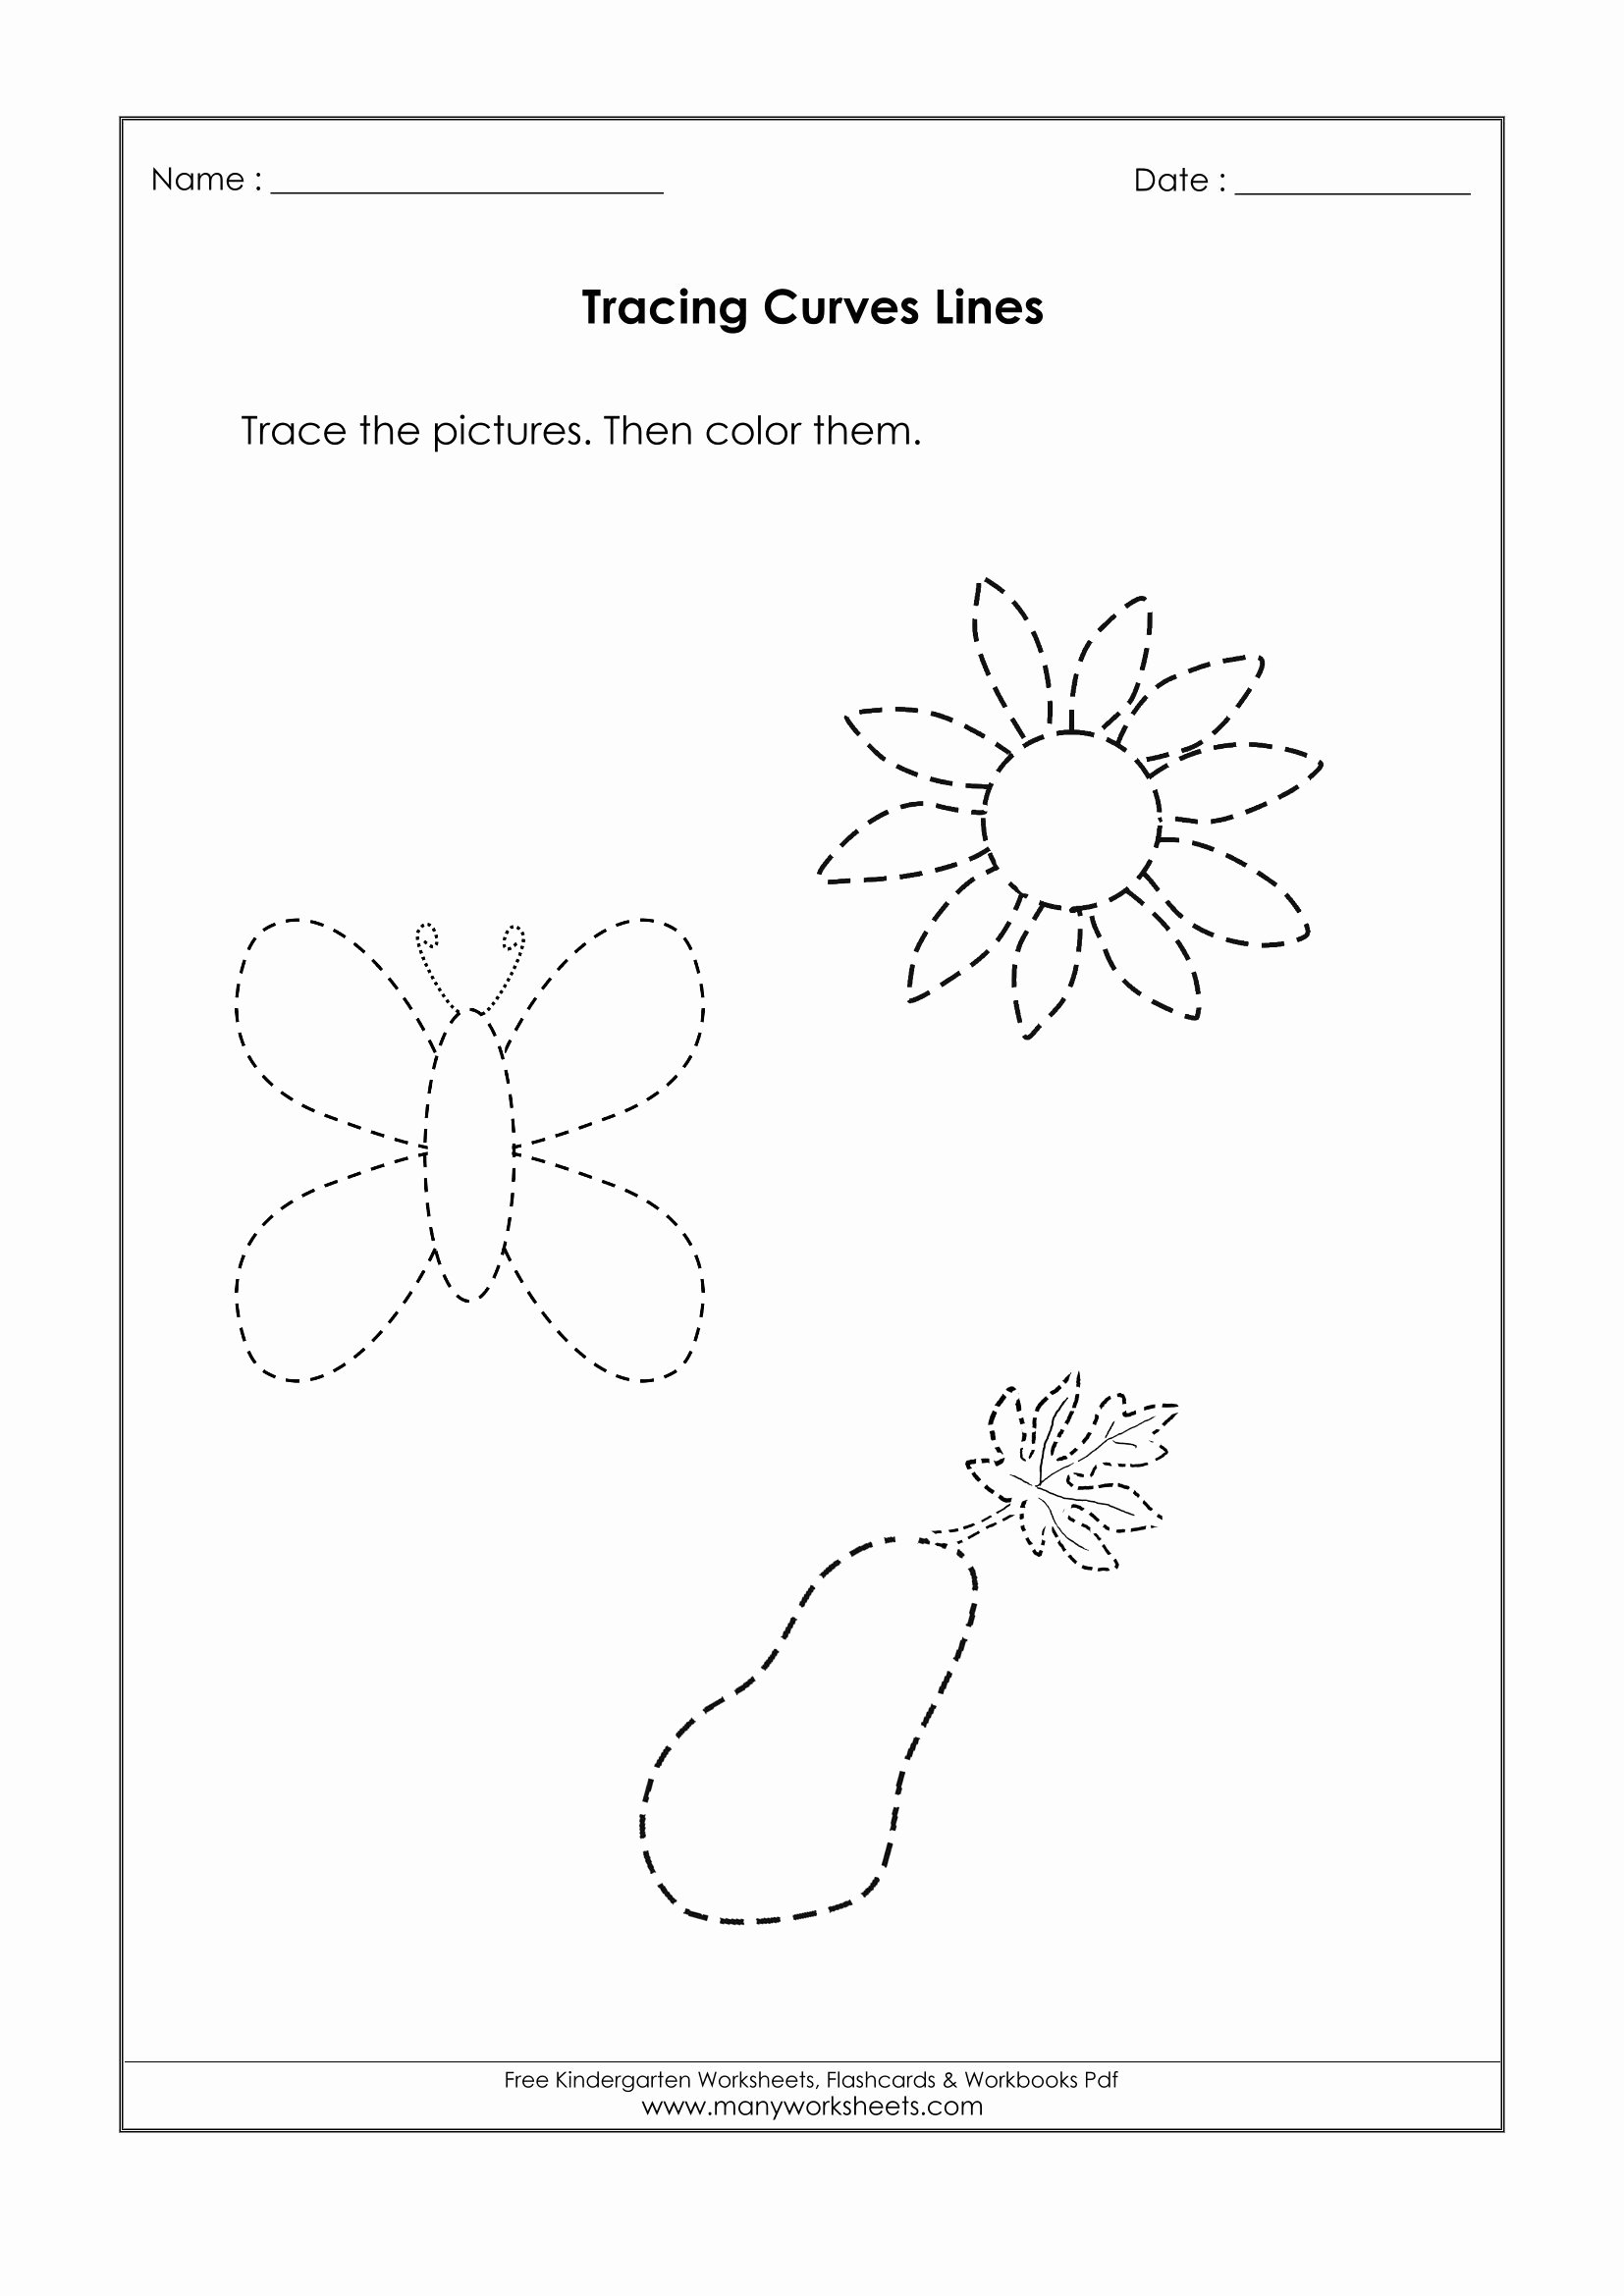 Trace the Lines Worksheets for Preschoolers Lovely Worksheets Tracing Curved Lines Worksheets Printable